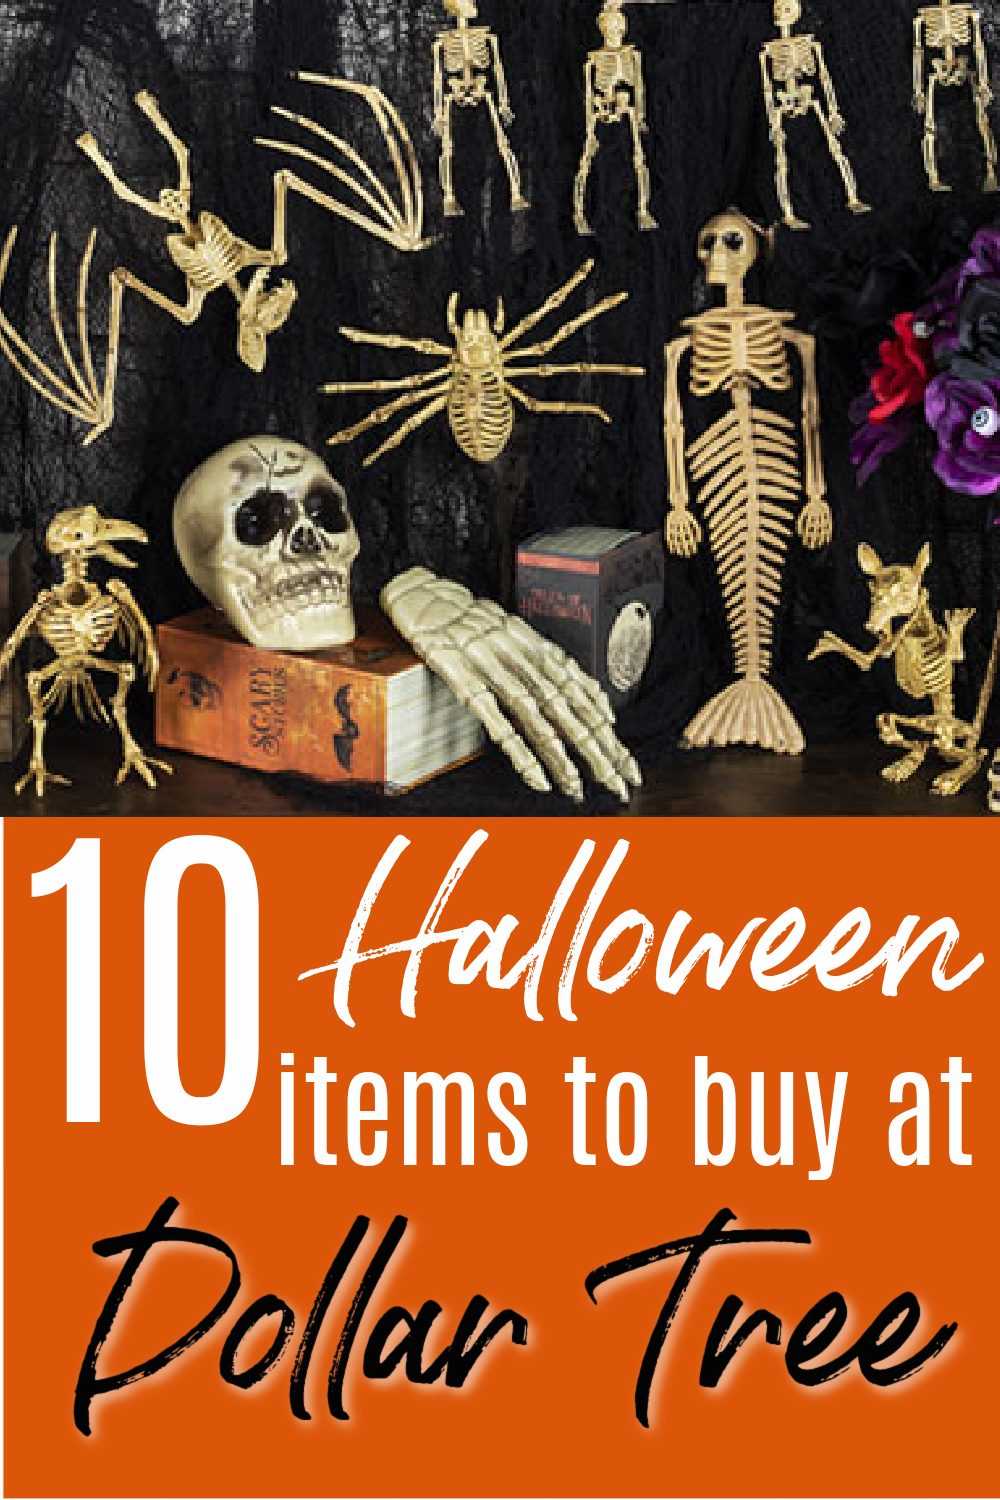 Skeletons for decorations from the dollar tree